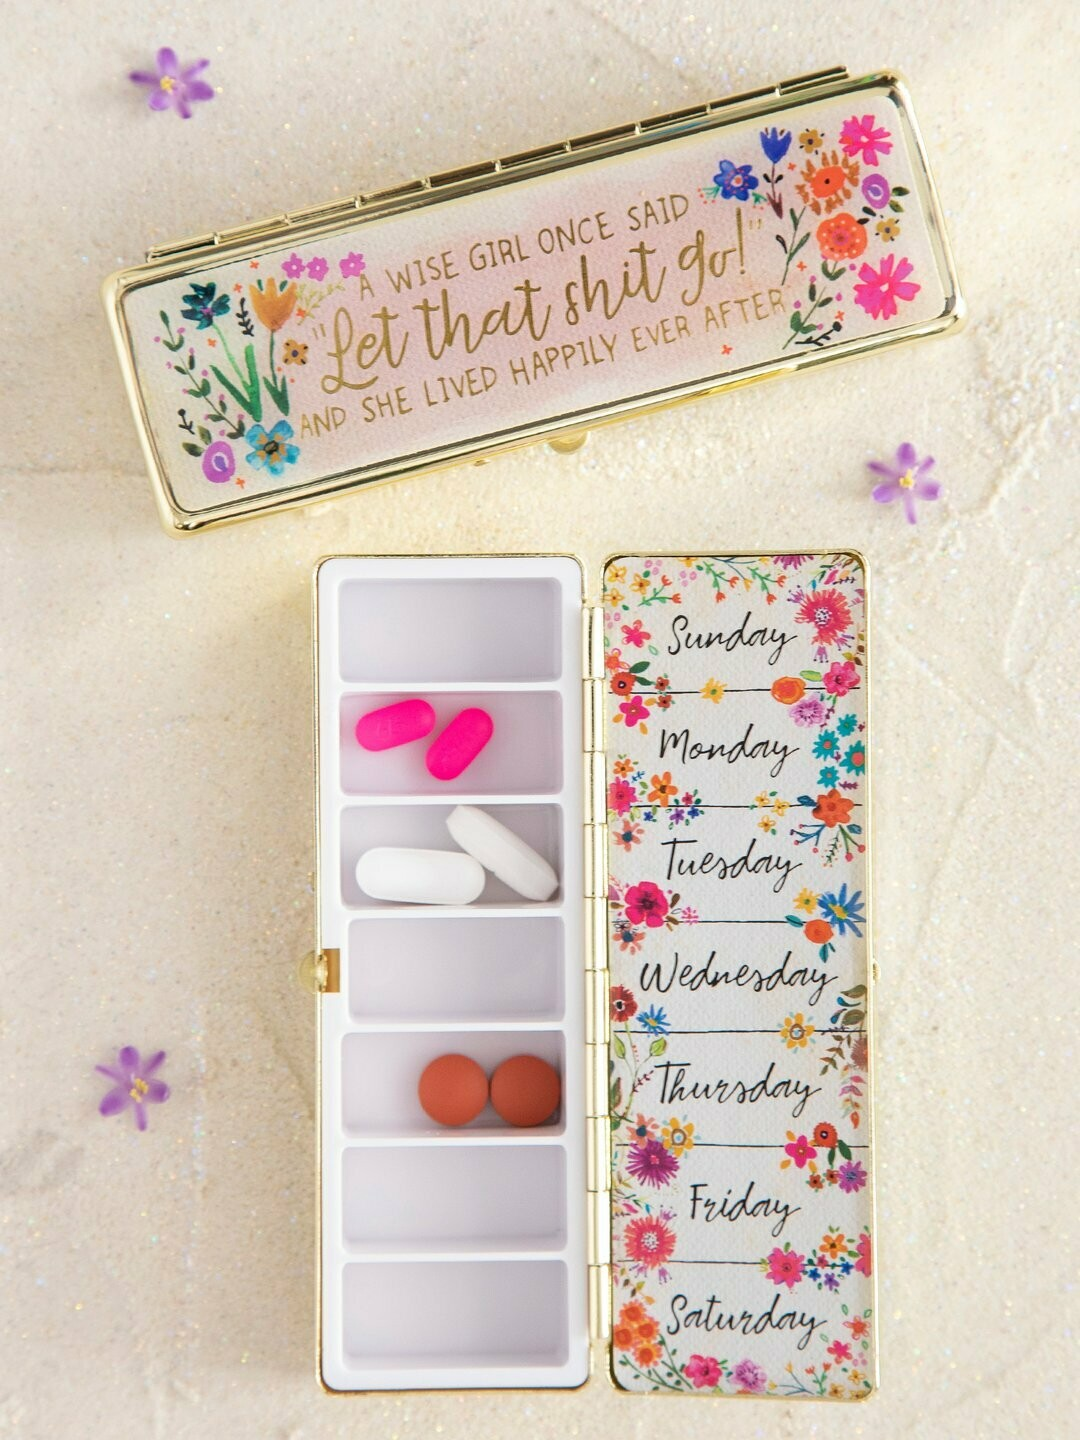 Wise Girl Daily Pill Box